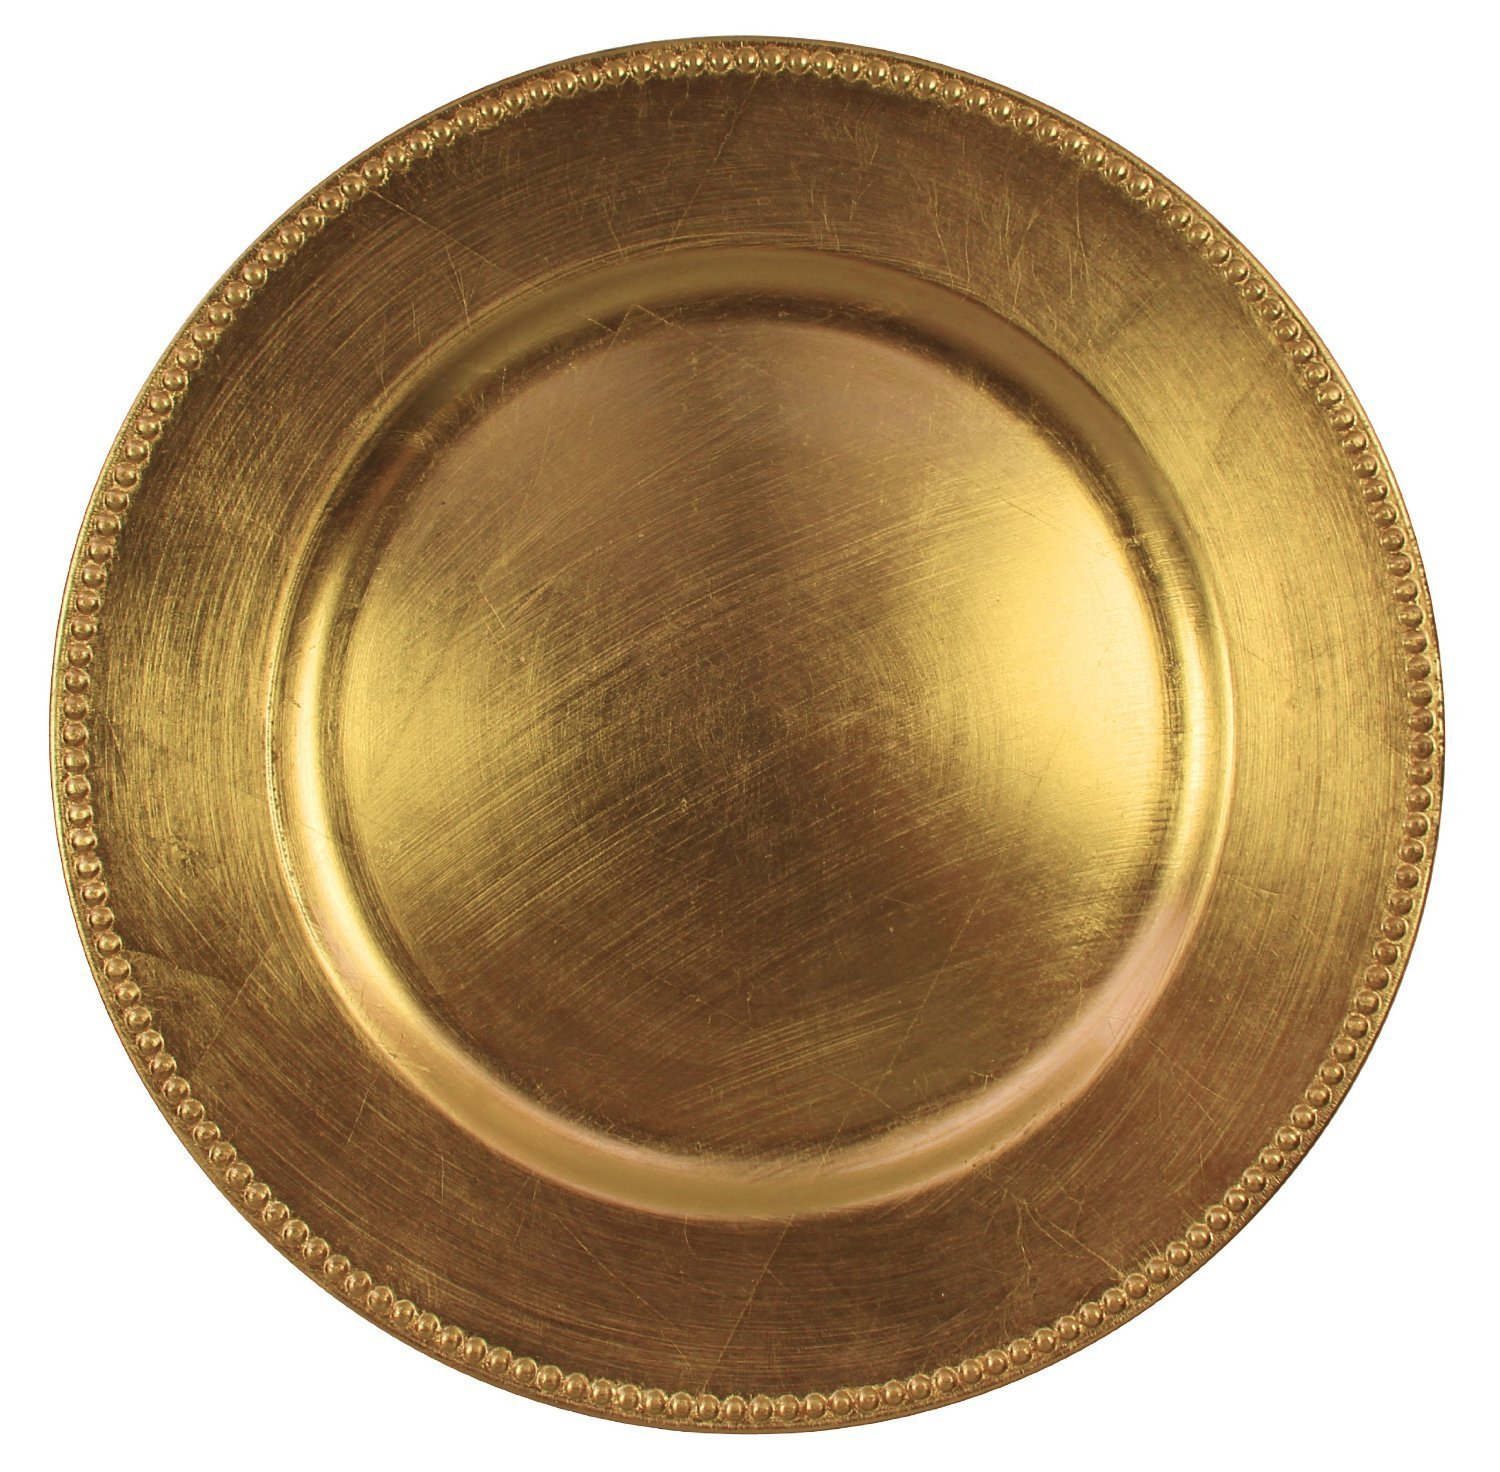 Round Charger Beaded Dinner Plates, Gold 13 inch, Set of 1,2,4,6, or 12 (6)